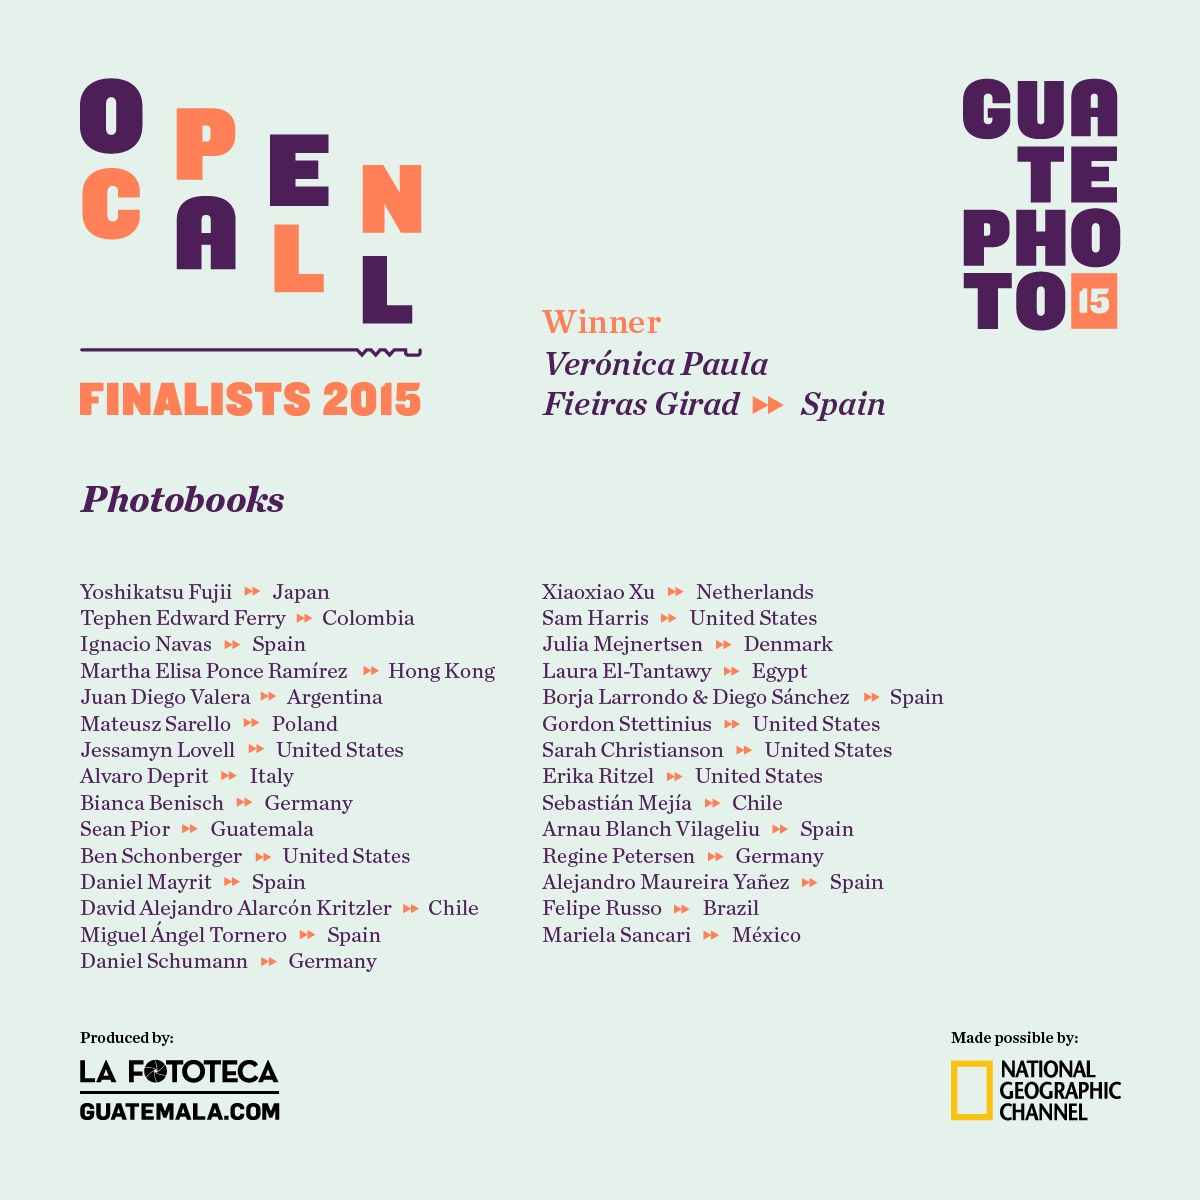 guatephoto 2015 announcement